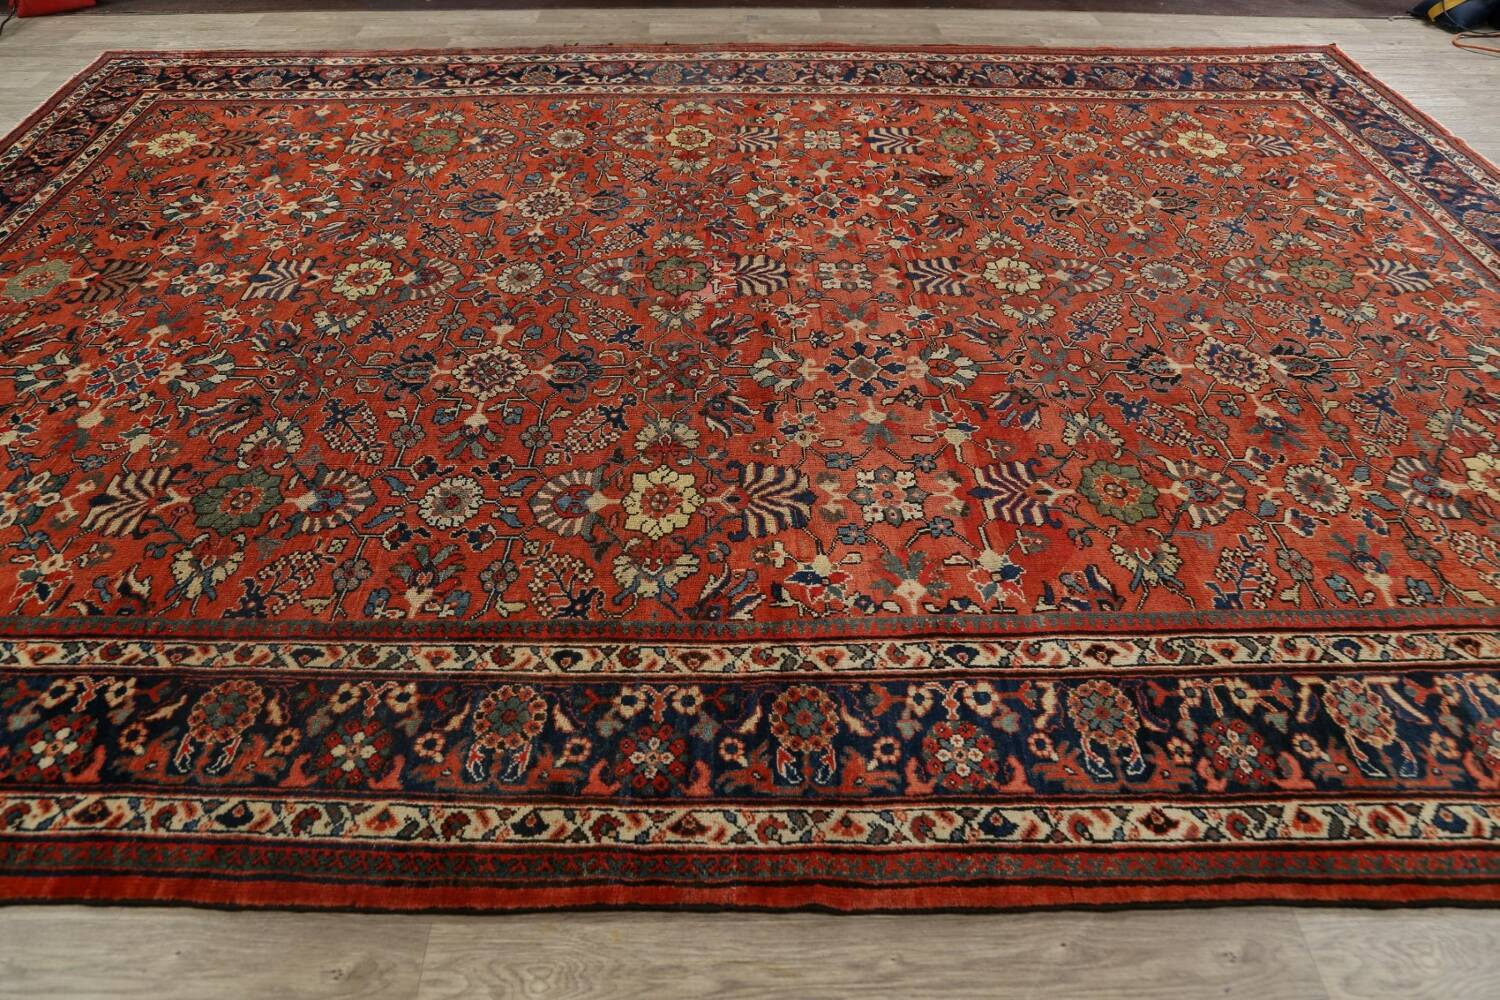 Pre-1900 Antique Vegetable Dye Sultanabad Persian Area Rug 10x14 image 16